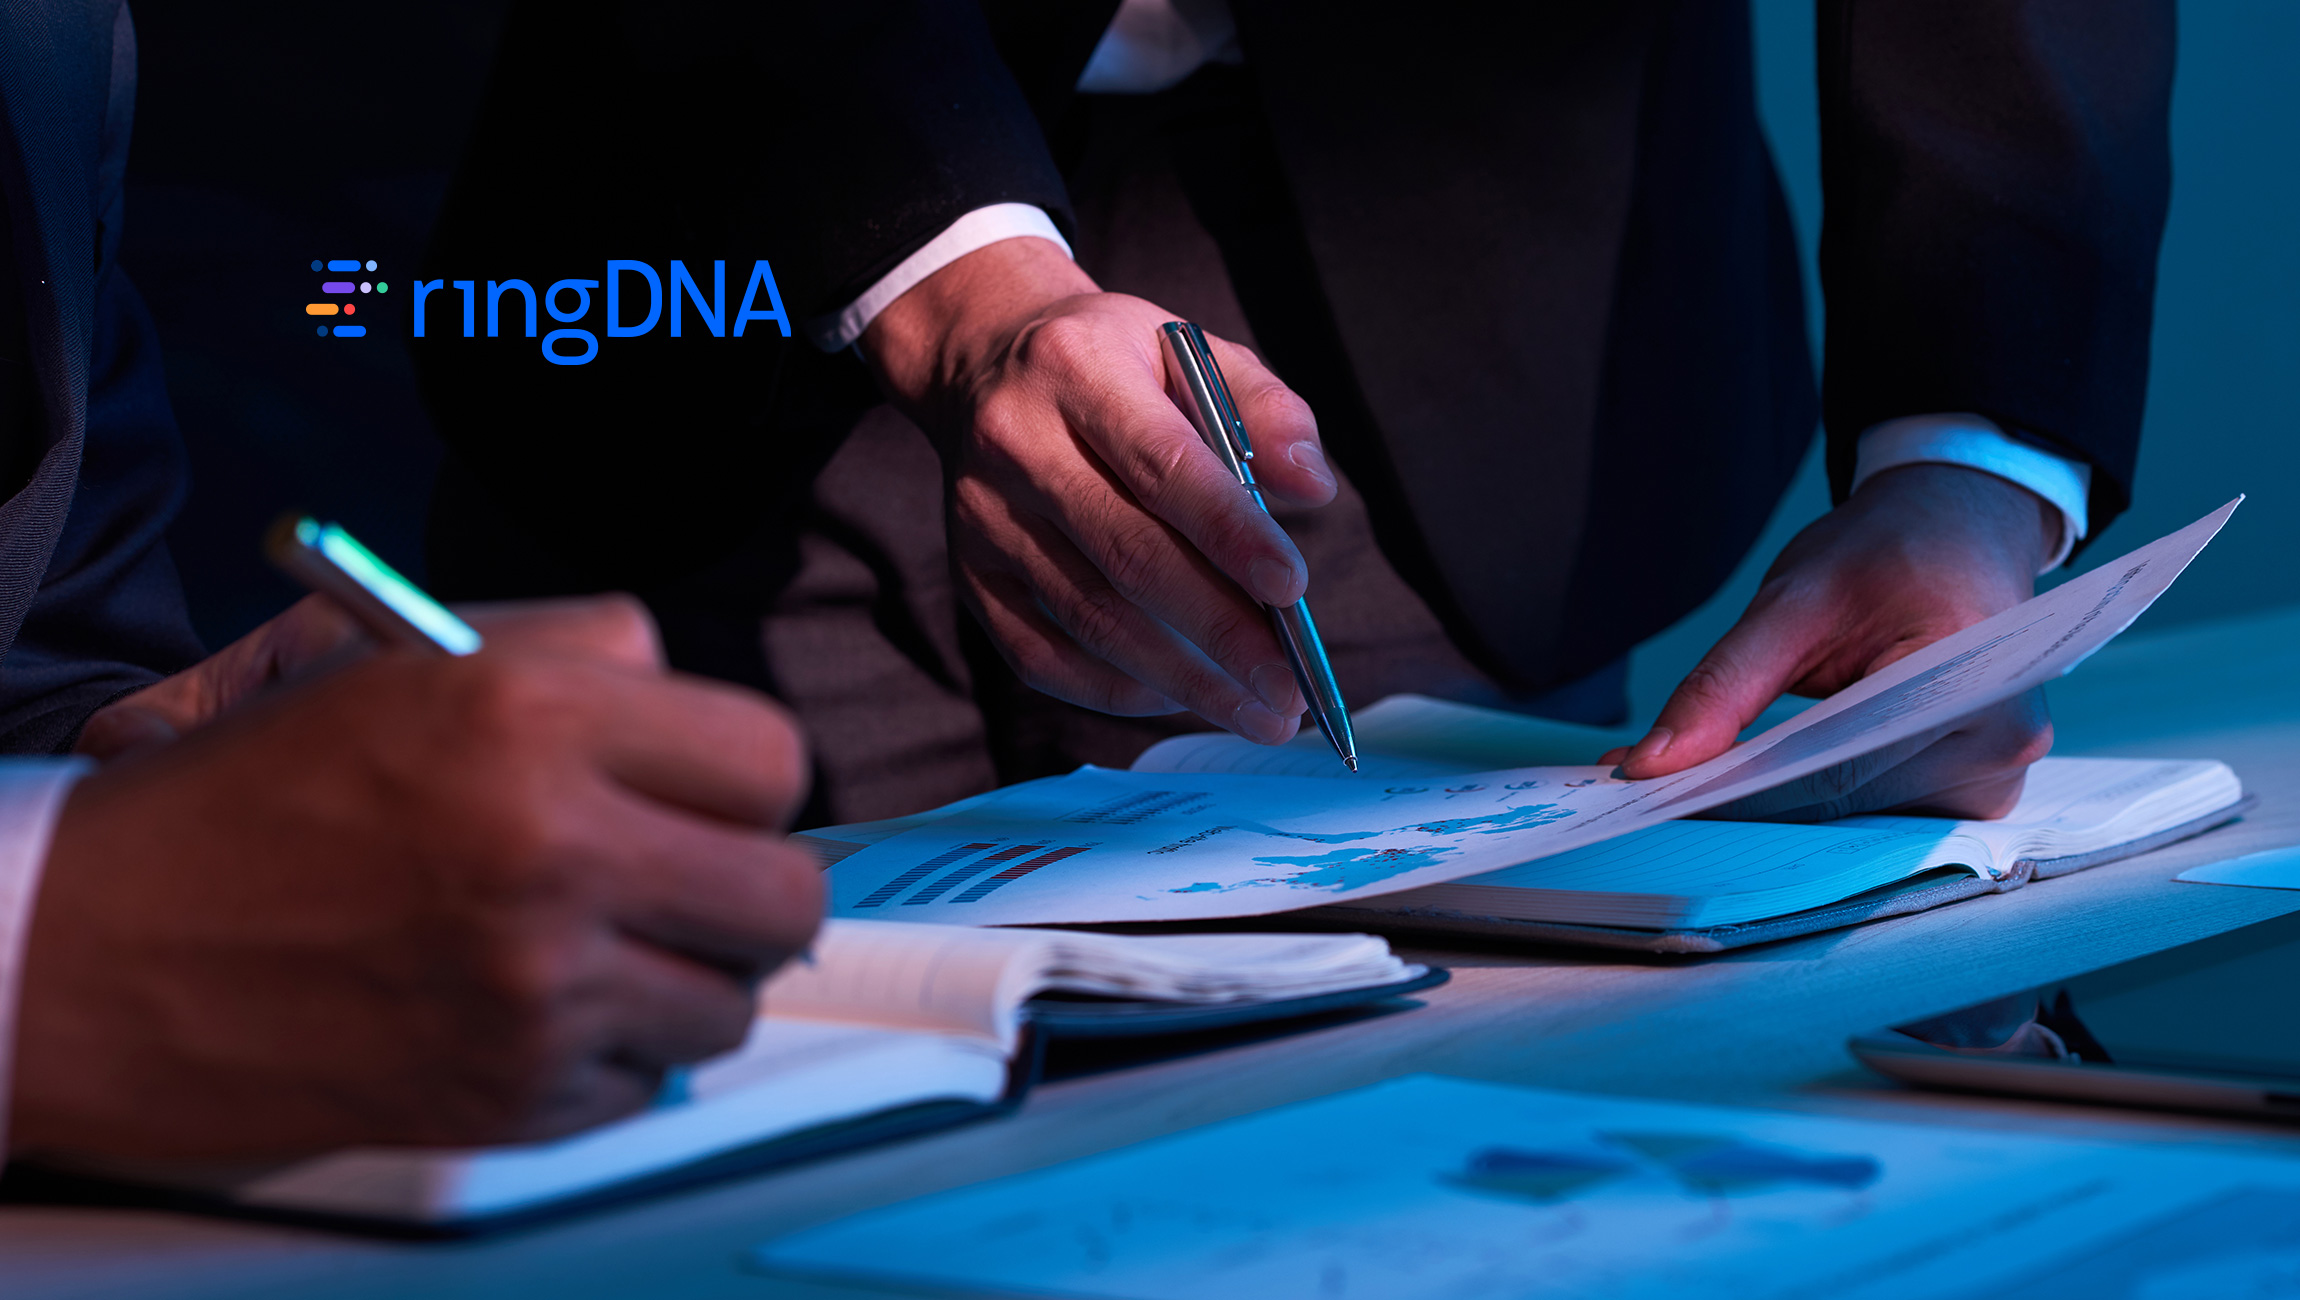 ringDNA Adds Christine Hill to Executive Team to Support Rapid Customer Growth